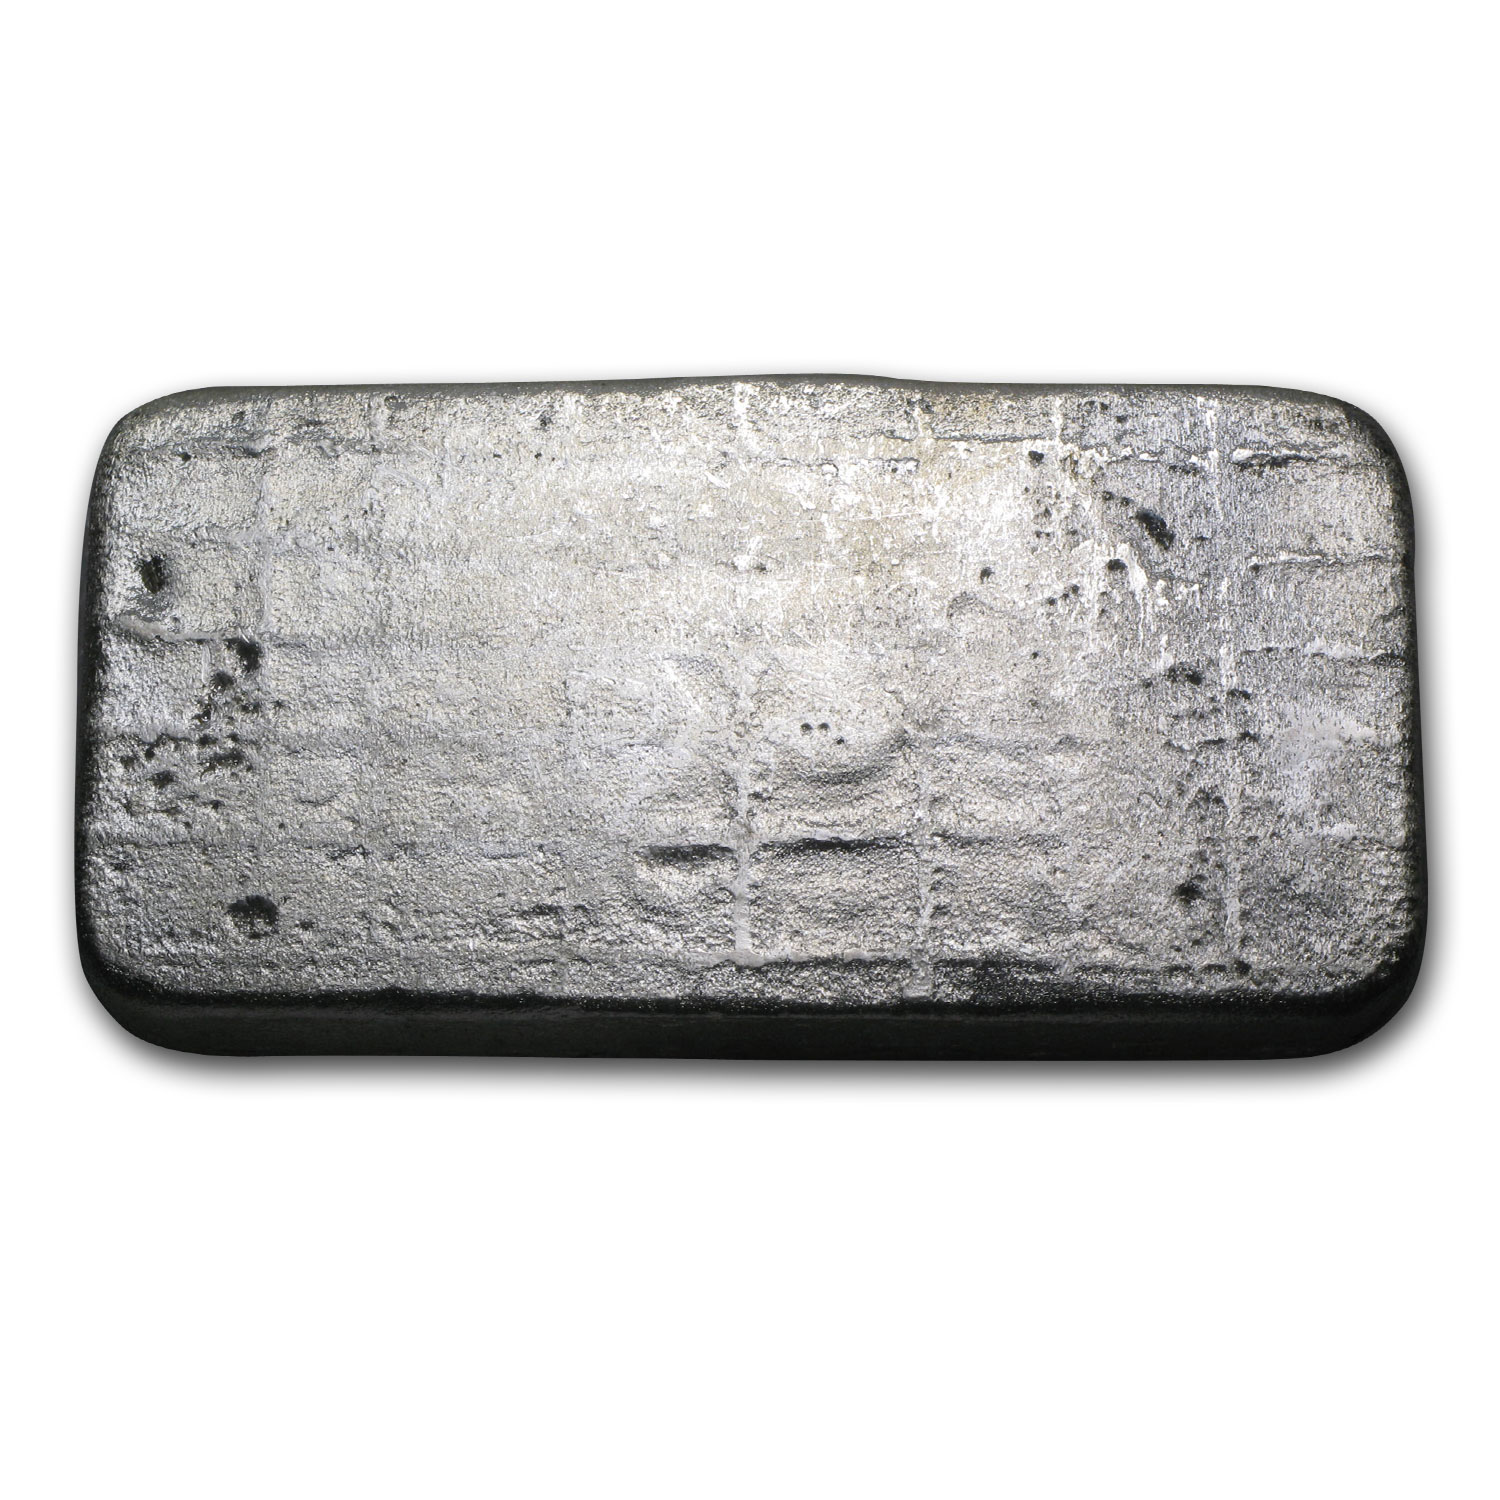 10 oz Silver Bar - Silvertowne (Poured/Vintage/Serial #)